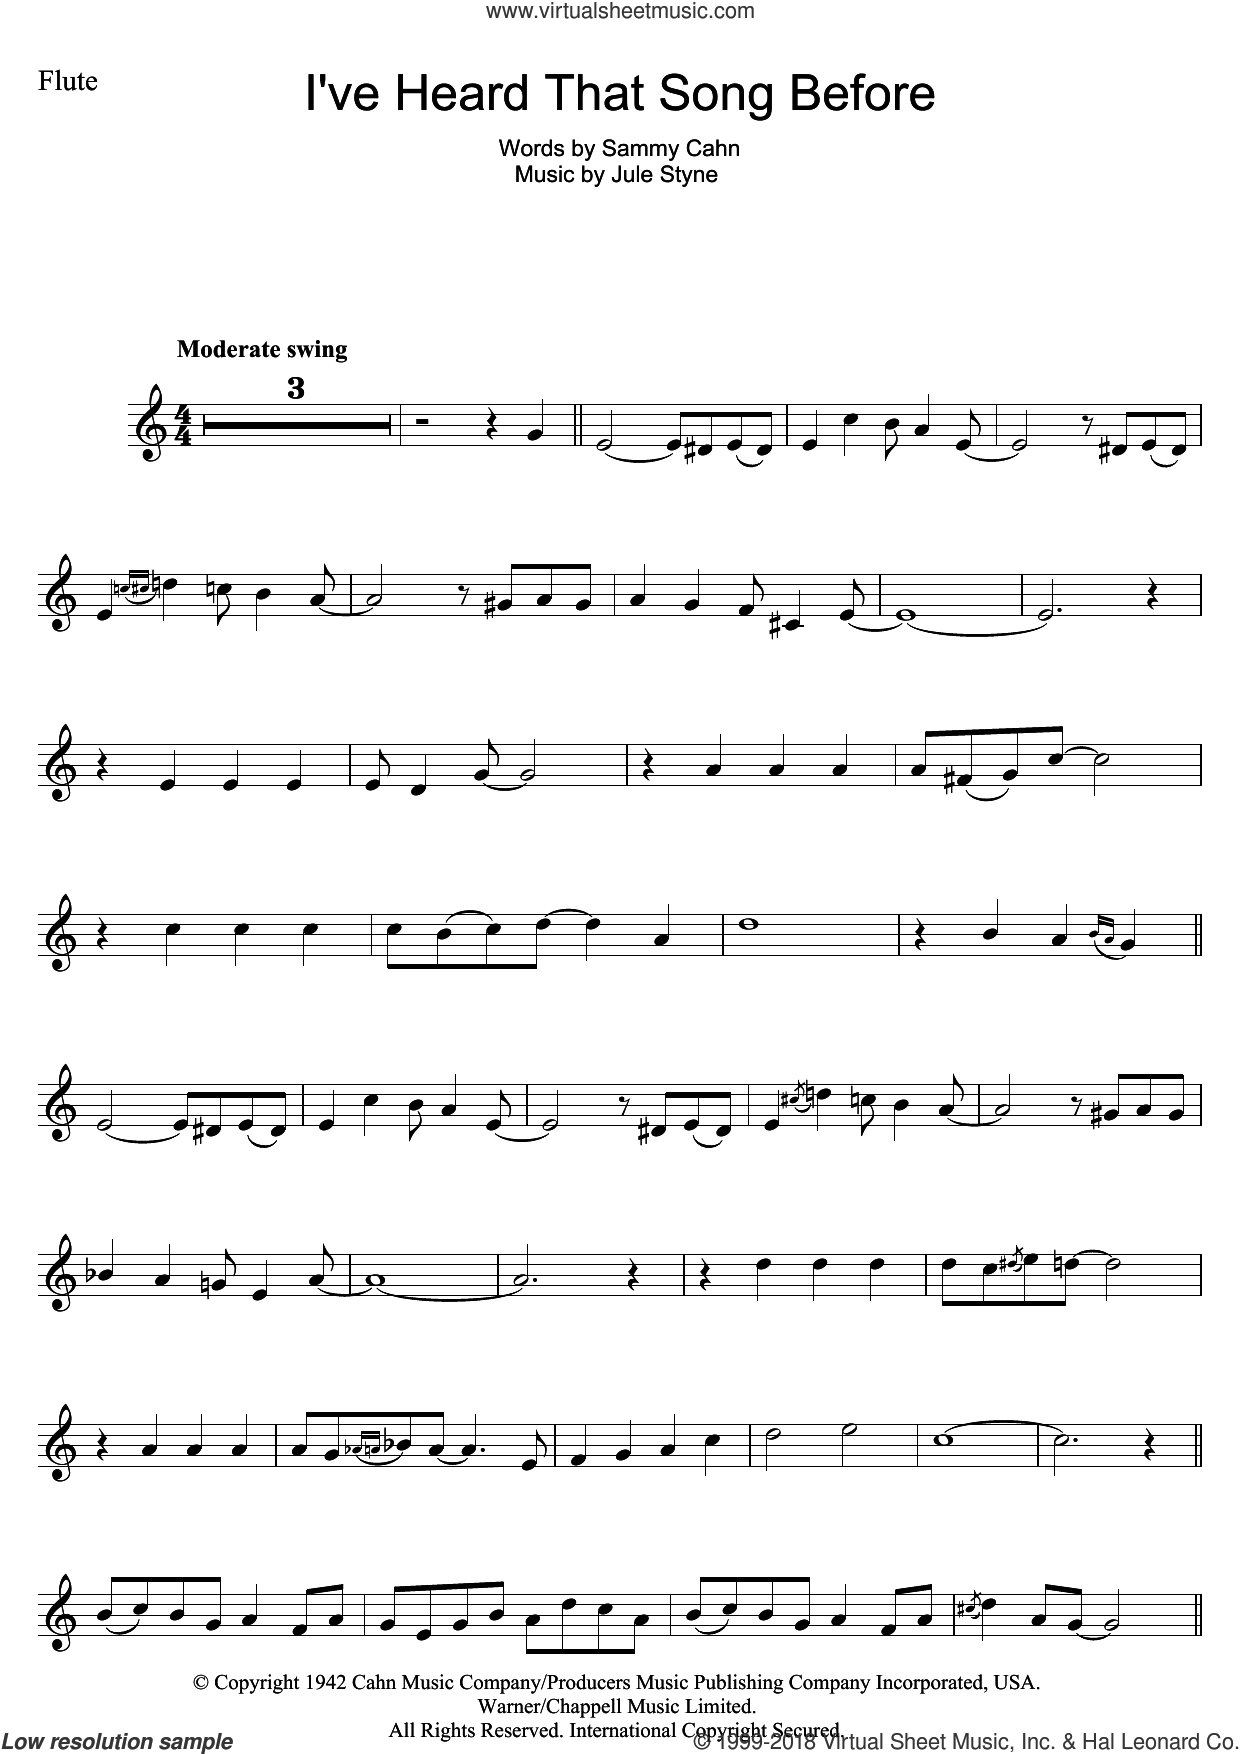 I've Heard That Song Before sheet music for flute solo by Harry James, Jule Styne and Sammy Cahn, intermediate skill level